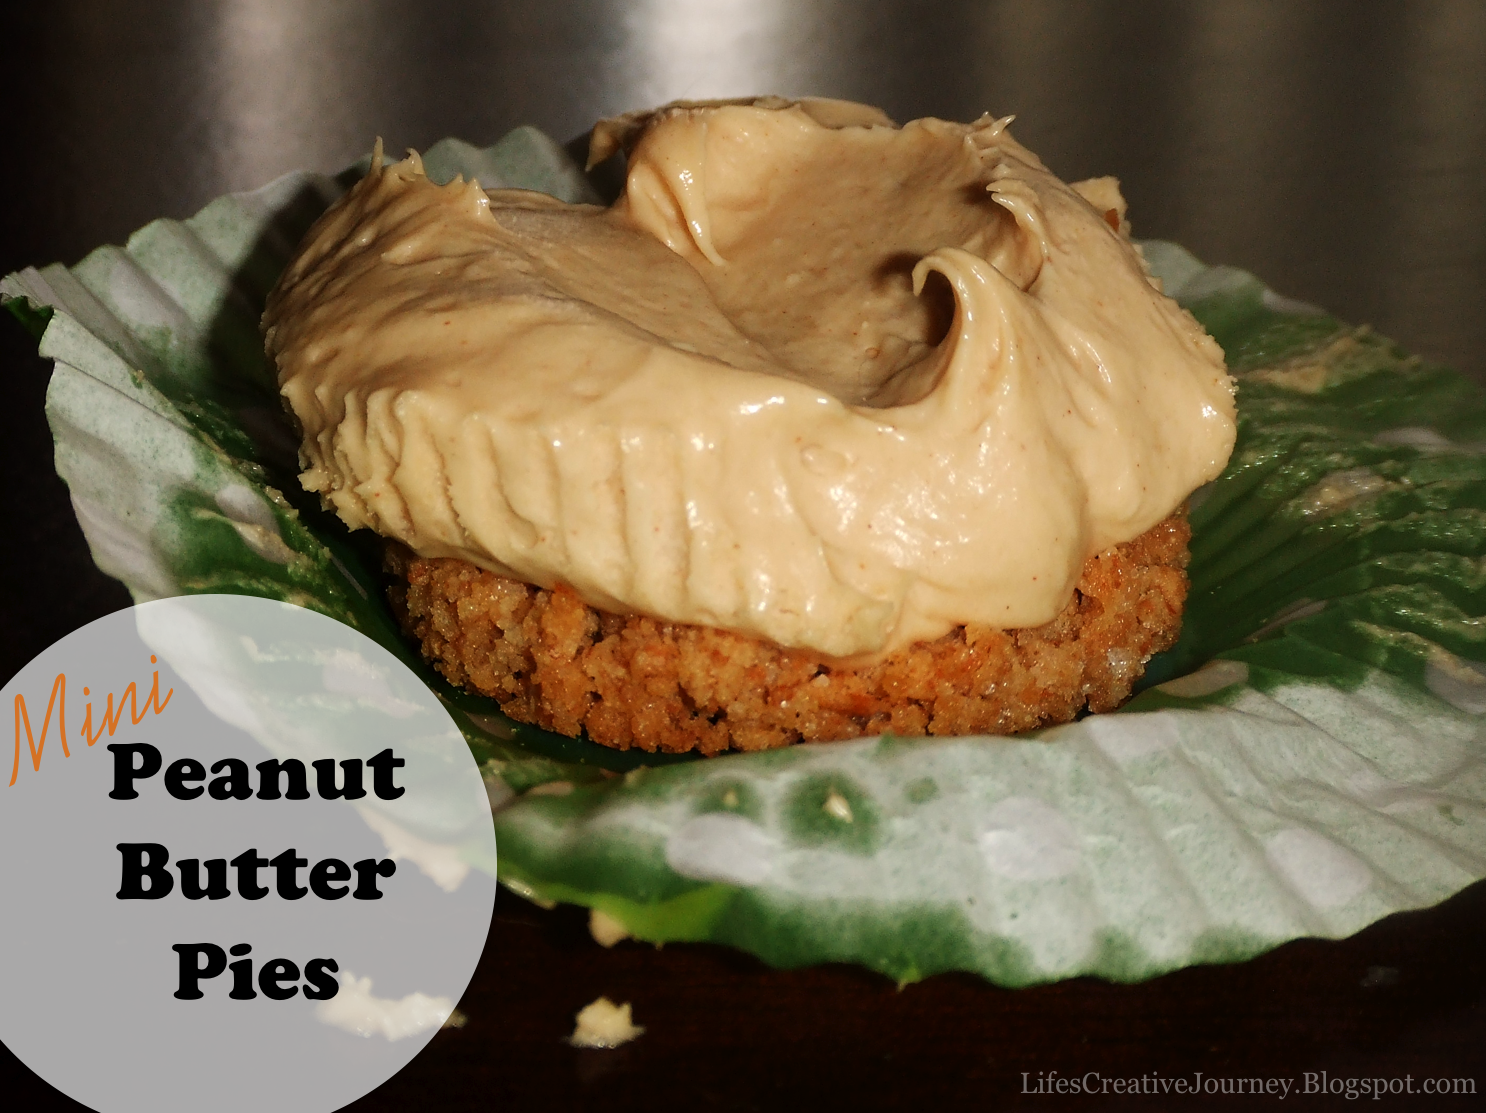 Simply Dream & Create: Mini Peanut Butter Pies